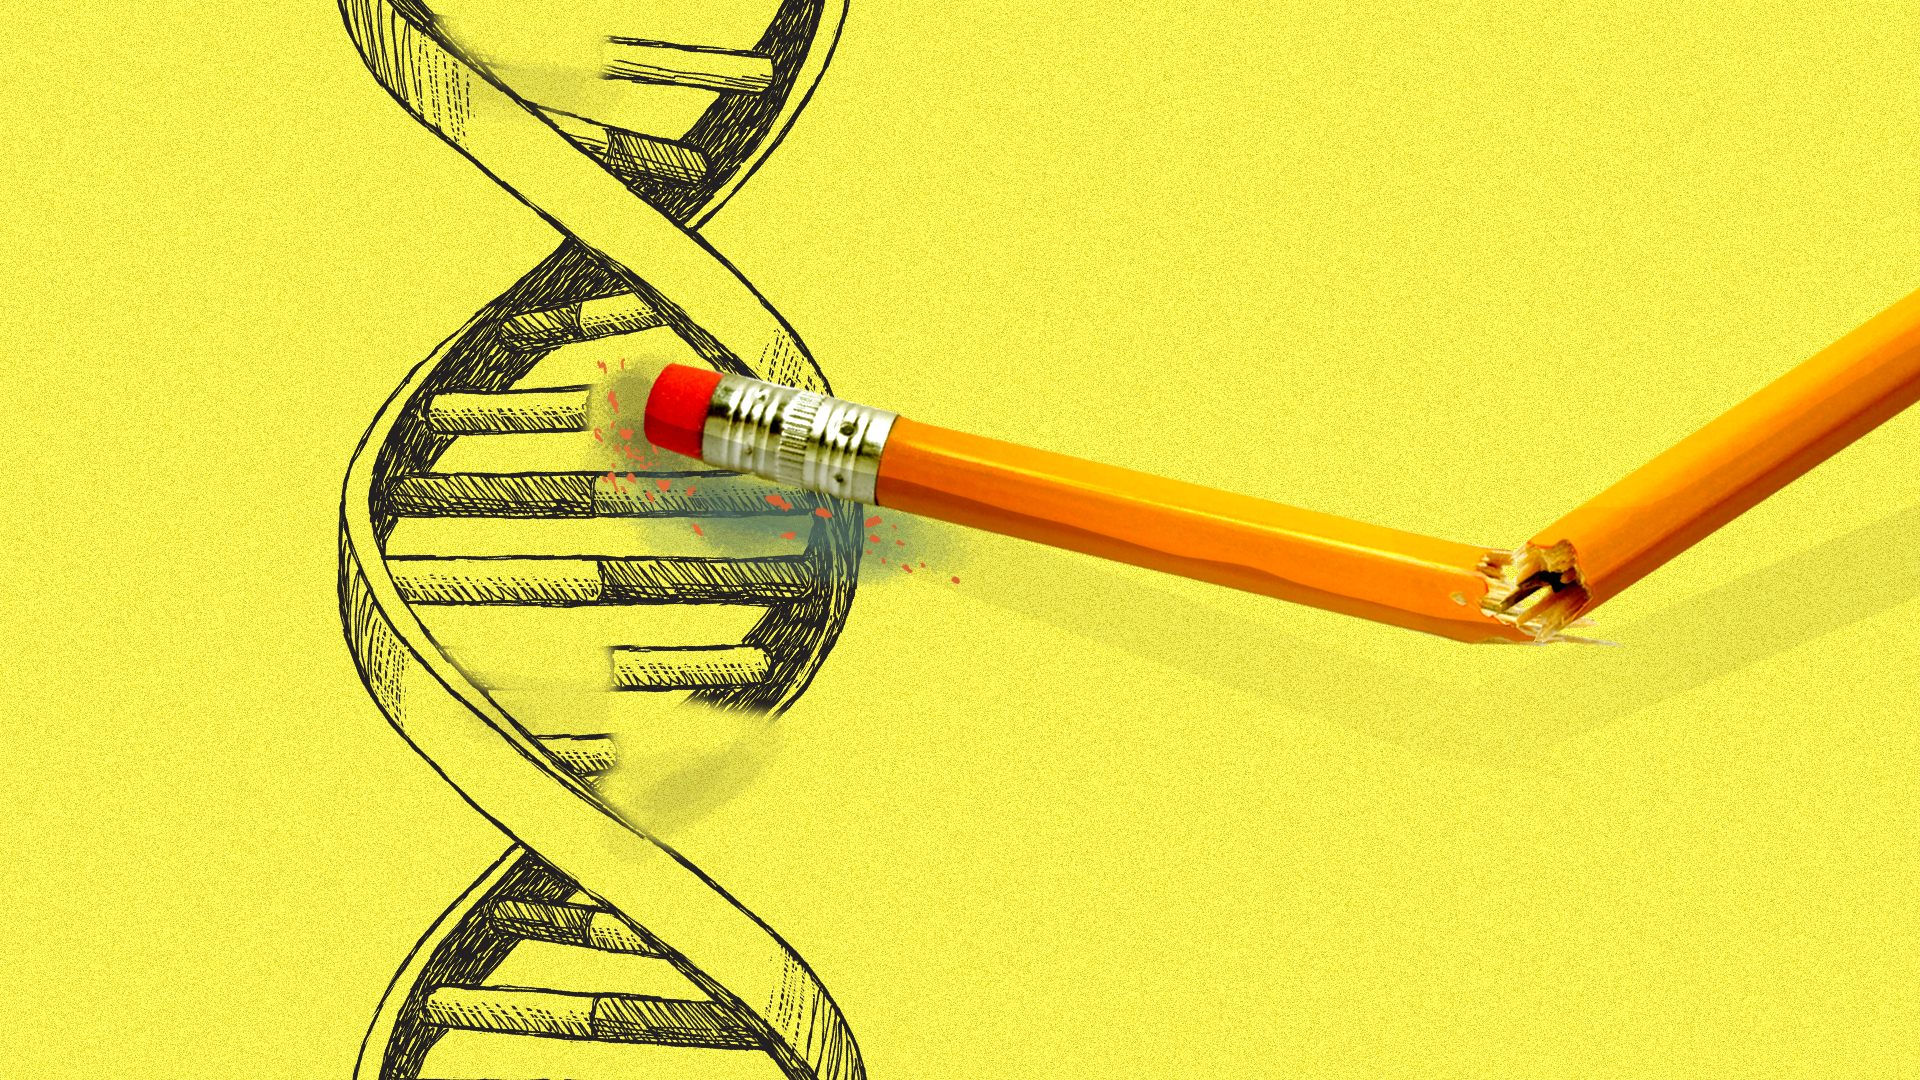 Illustration of a double stranded DNA helix with a broken pencil erasing part of one strand